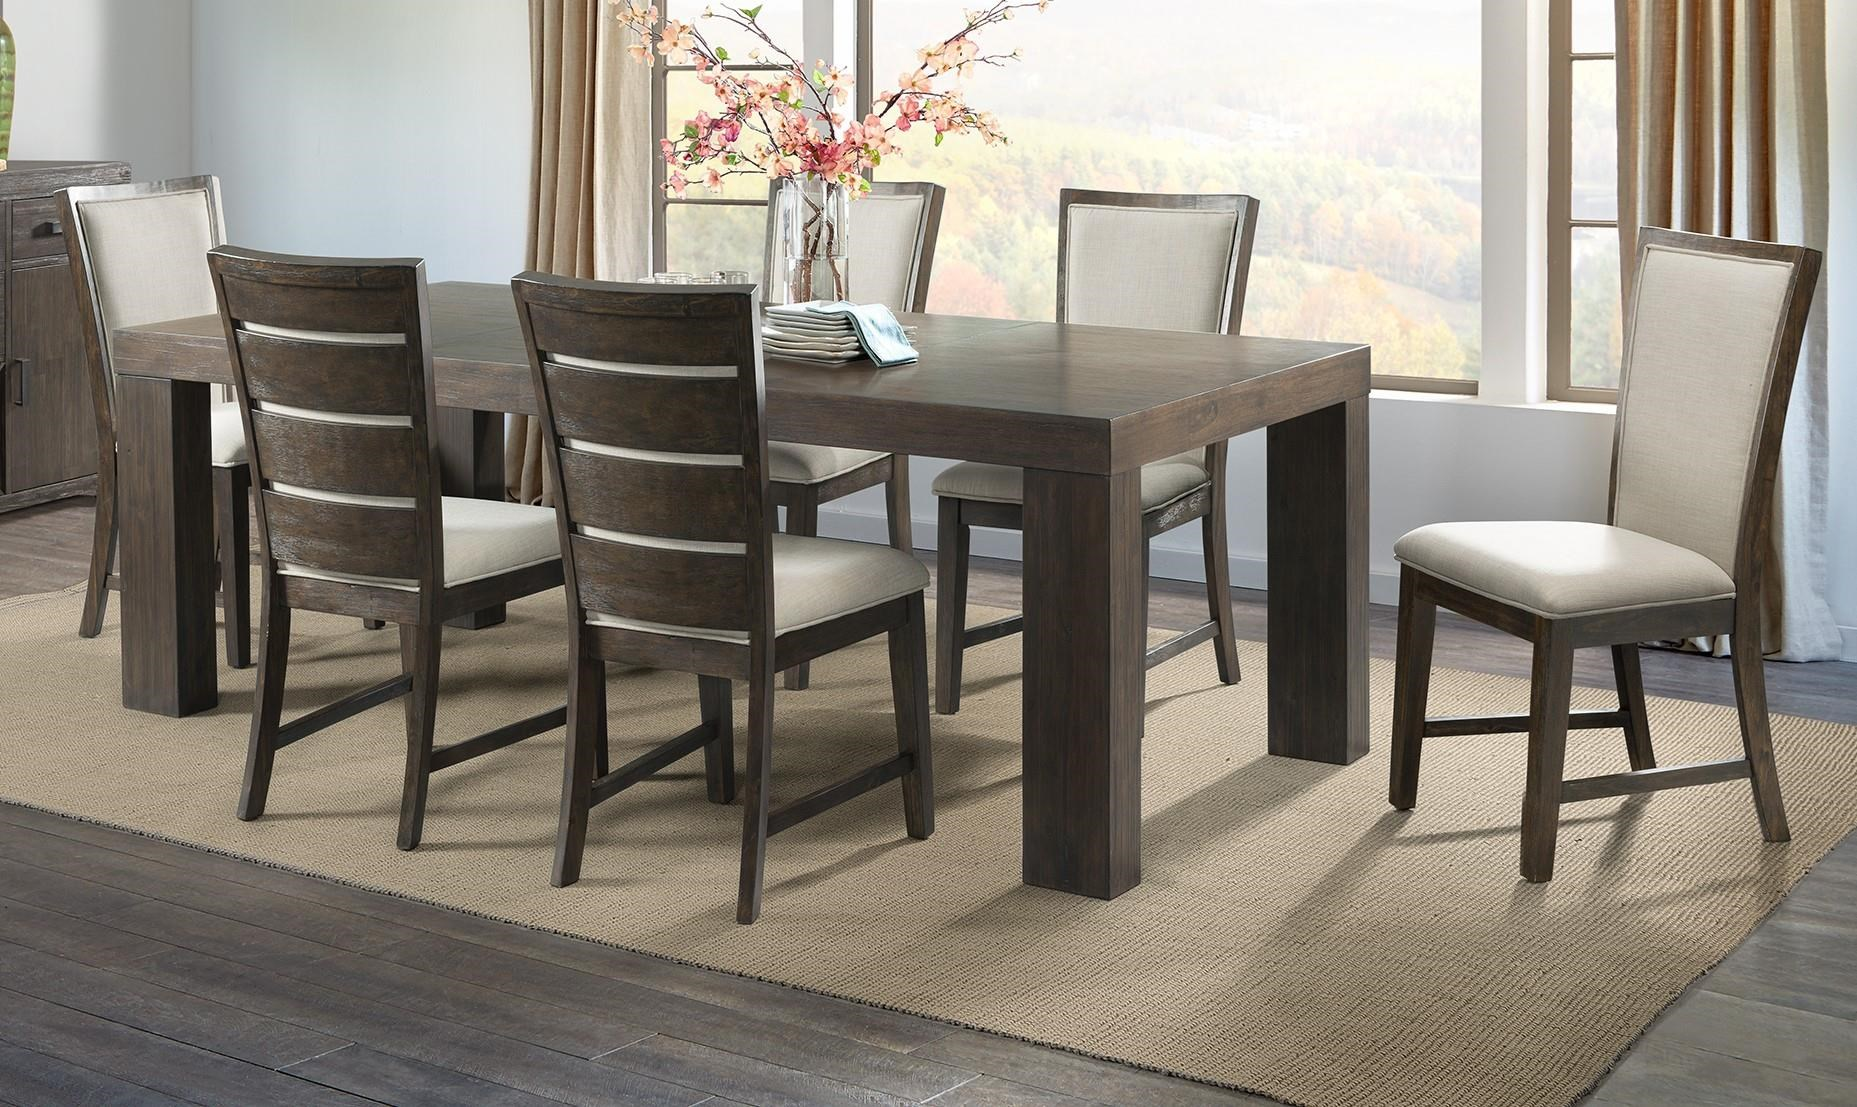 Grady Dining Table with 6 Slat Back Chairs by Elements International at Johnny Janosik